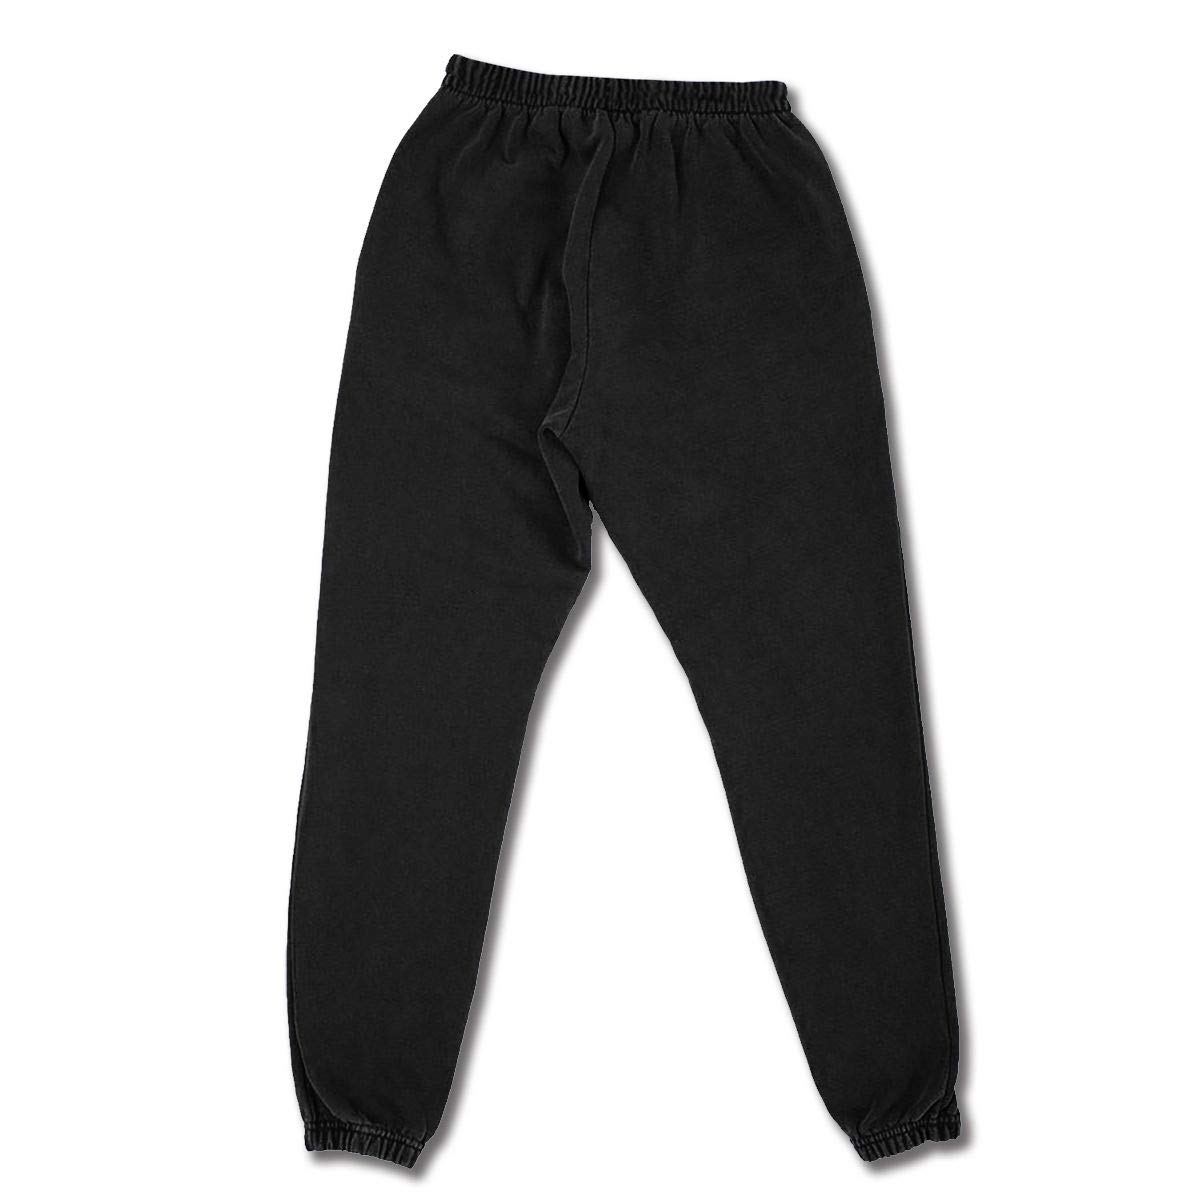 Mens Lightweight Jogger Sport Pants Dormouse is A Pro Sweatpants with Elastic Waist